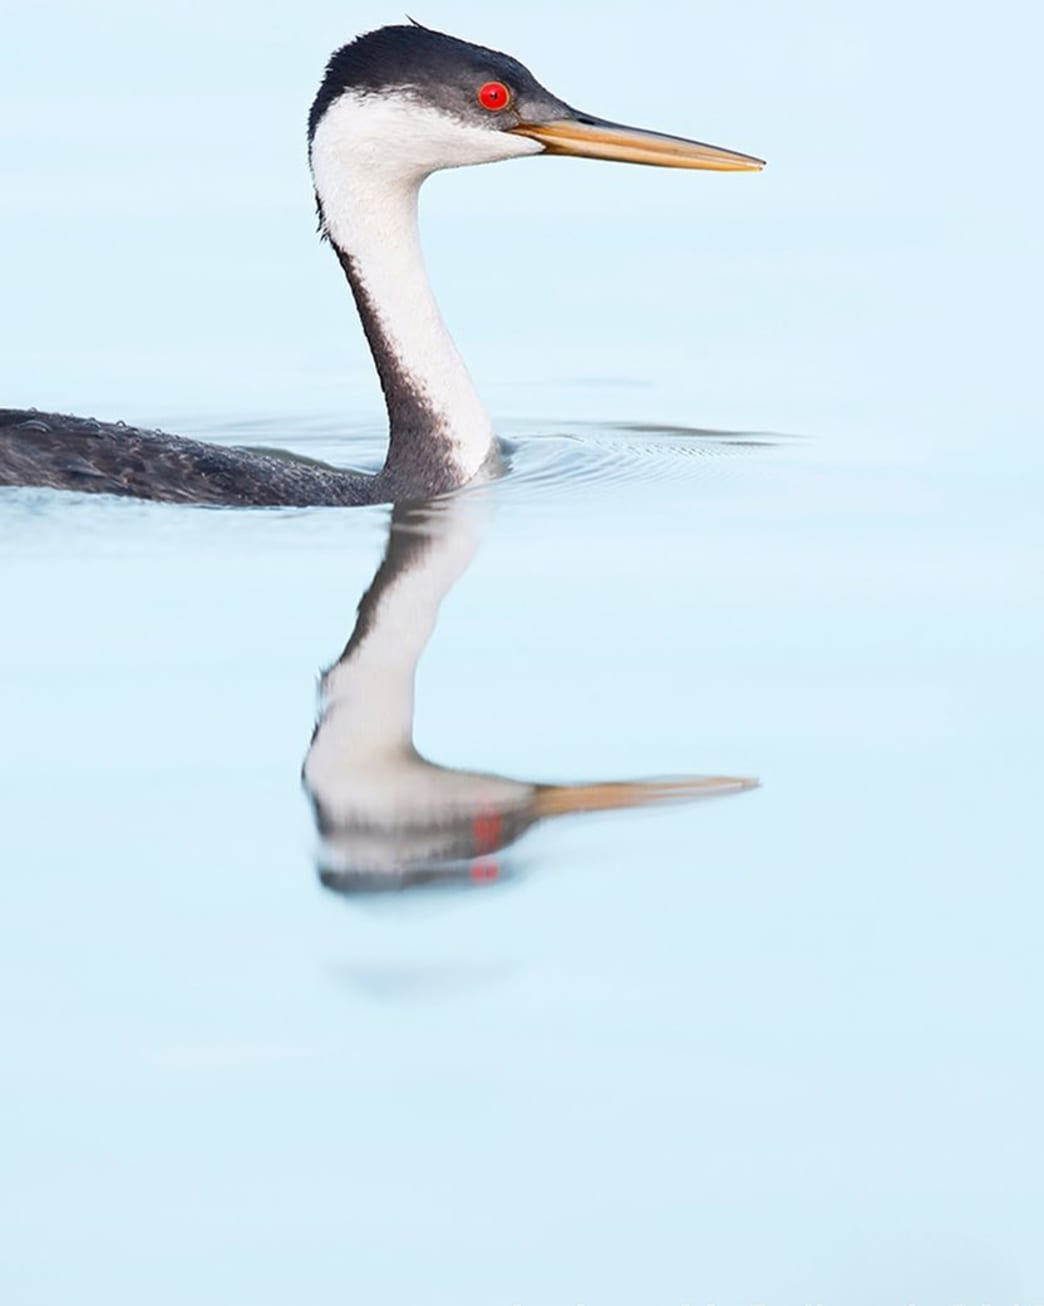 @andrew_j_mccullough Western Grebe Putnam Point